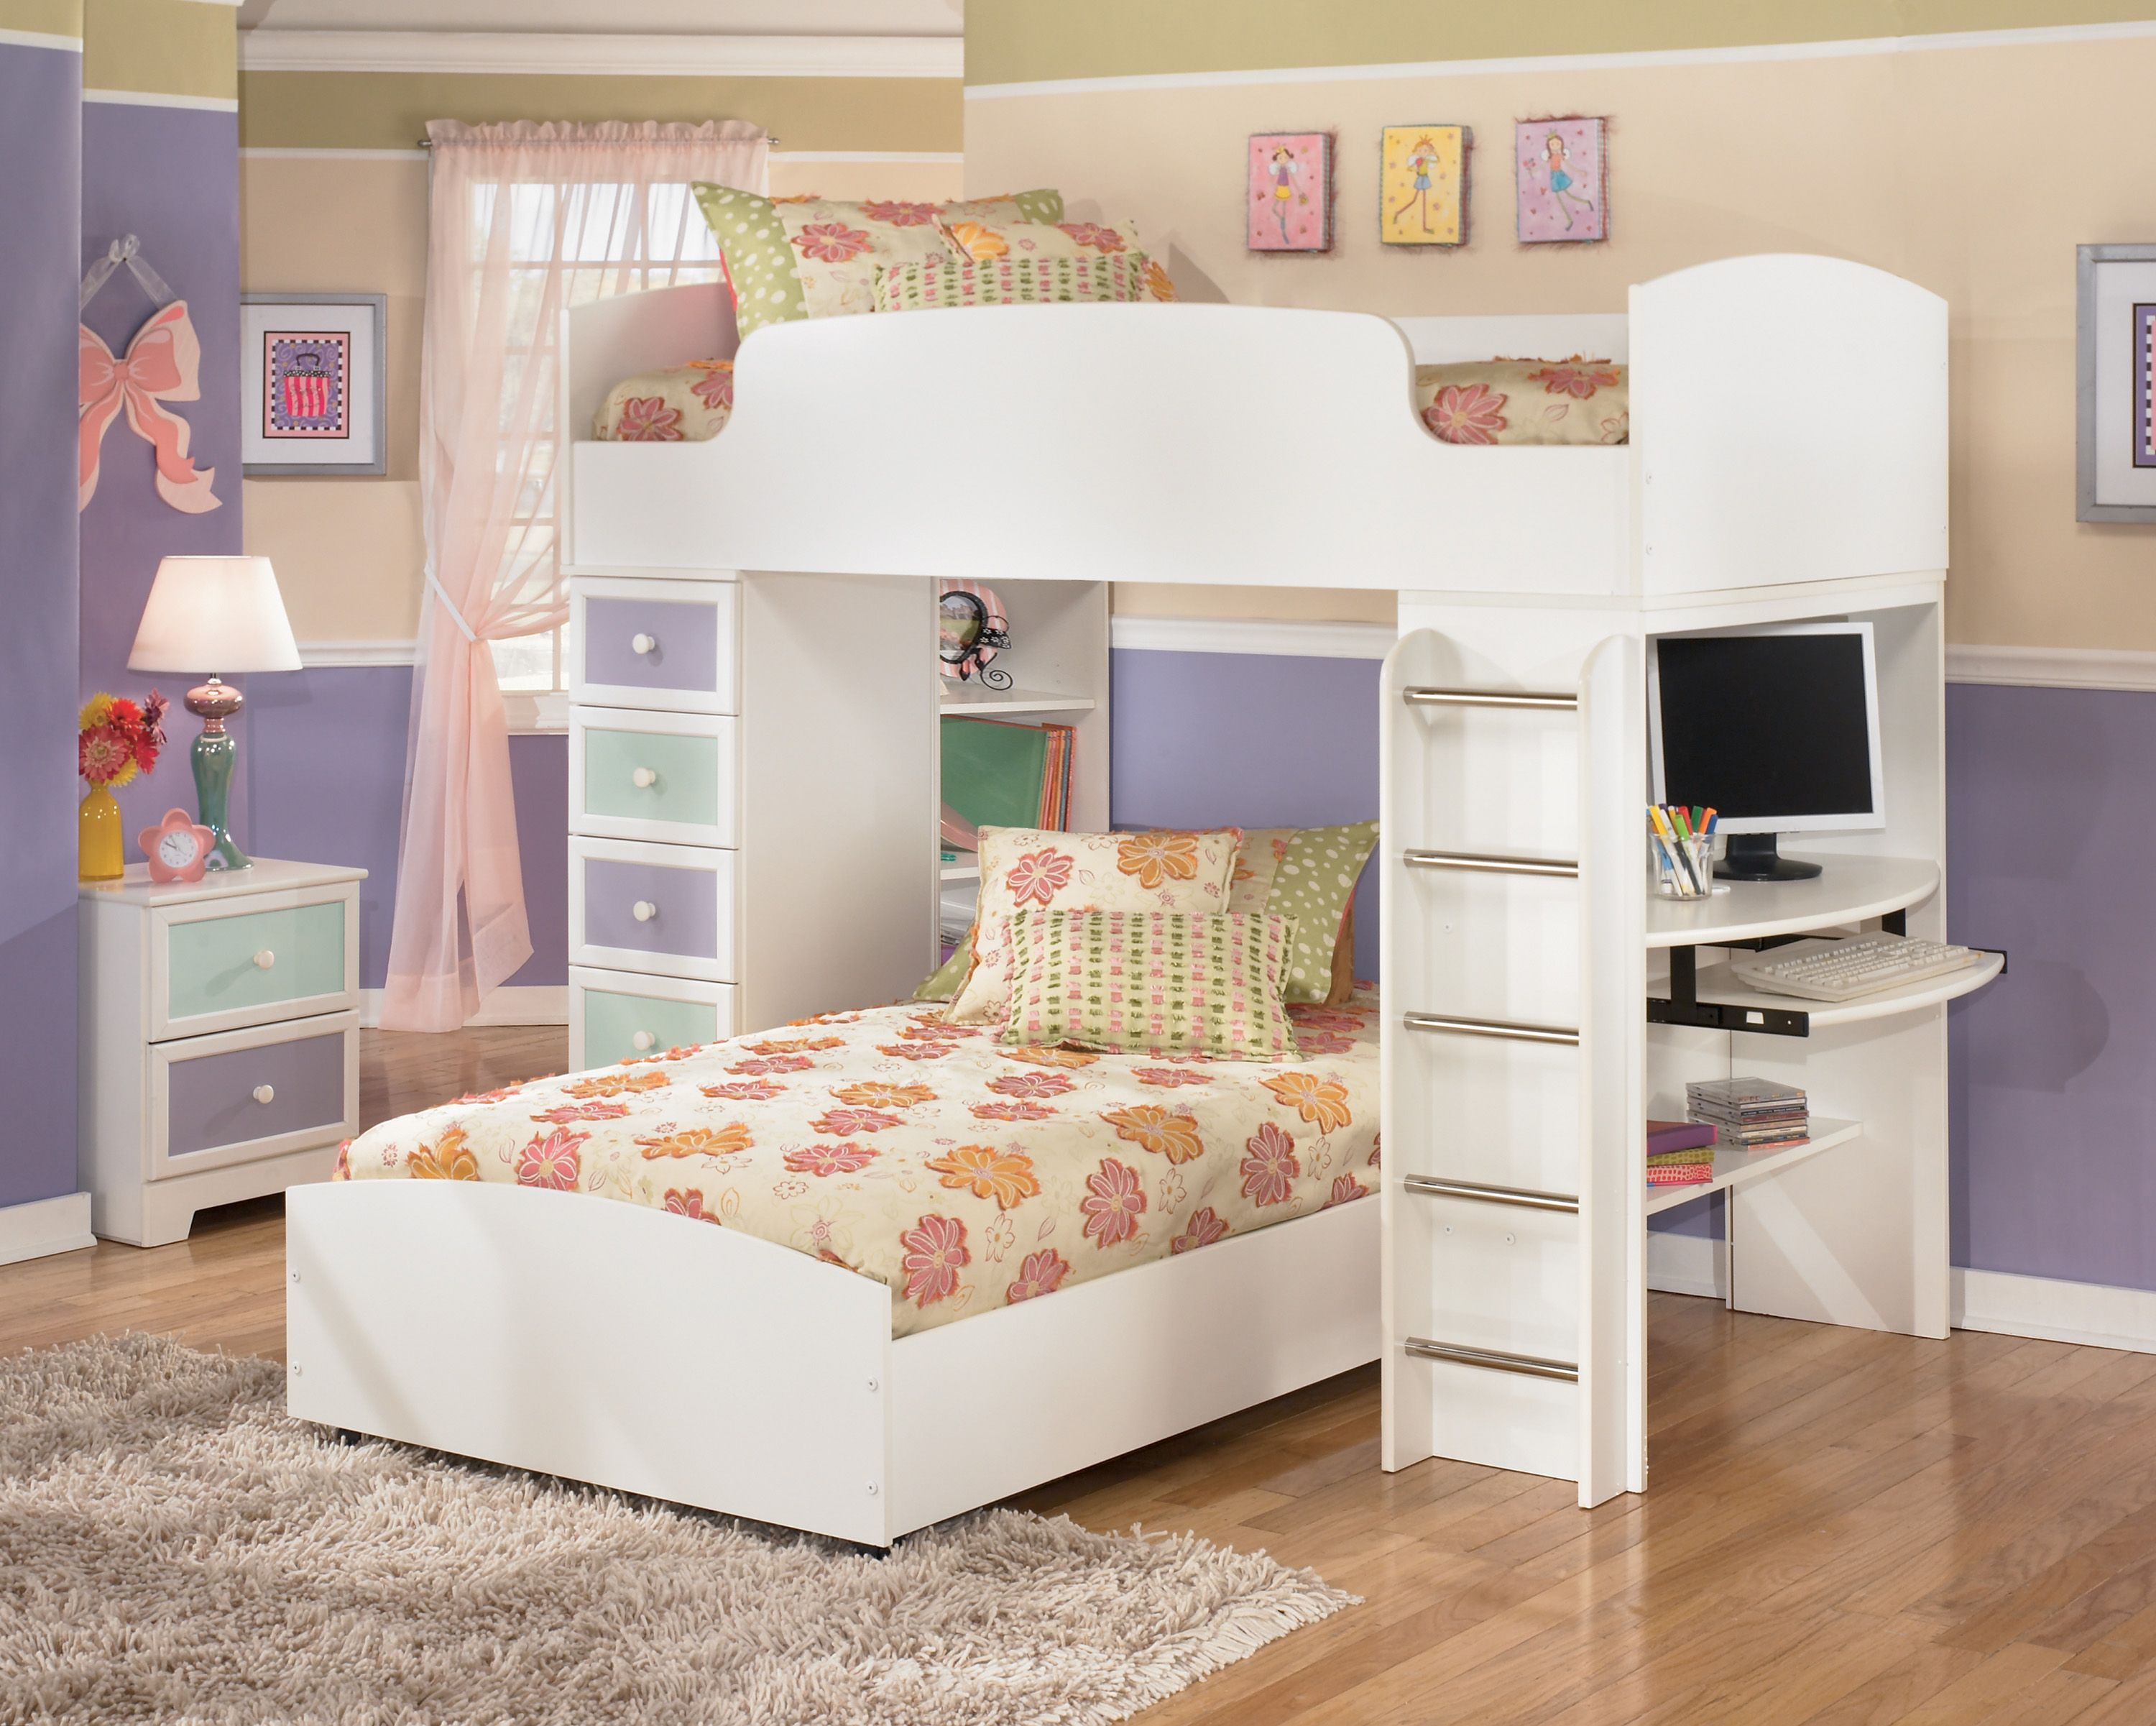 Incredible Children Bunk Bed With Study Table Storage Ideas For House Download Free Architecture Designs Scobabritishbridgeorg